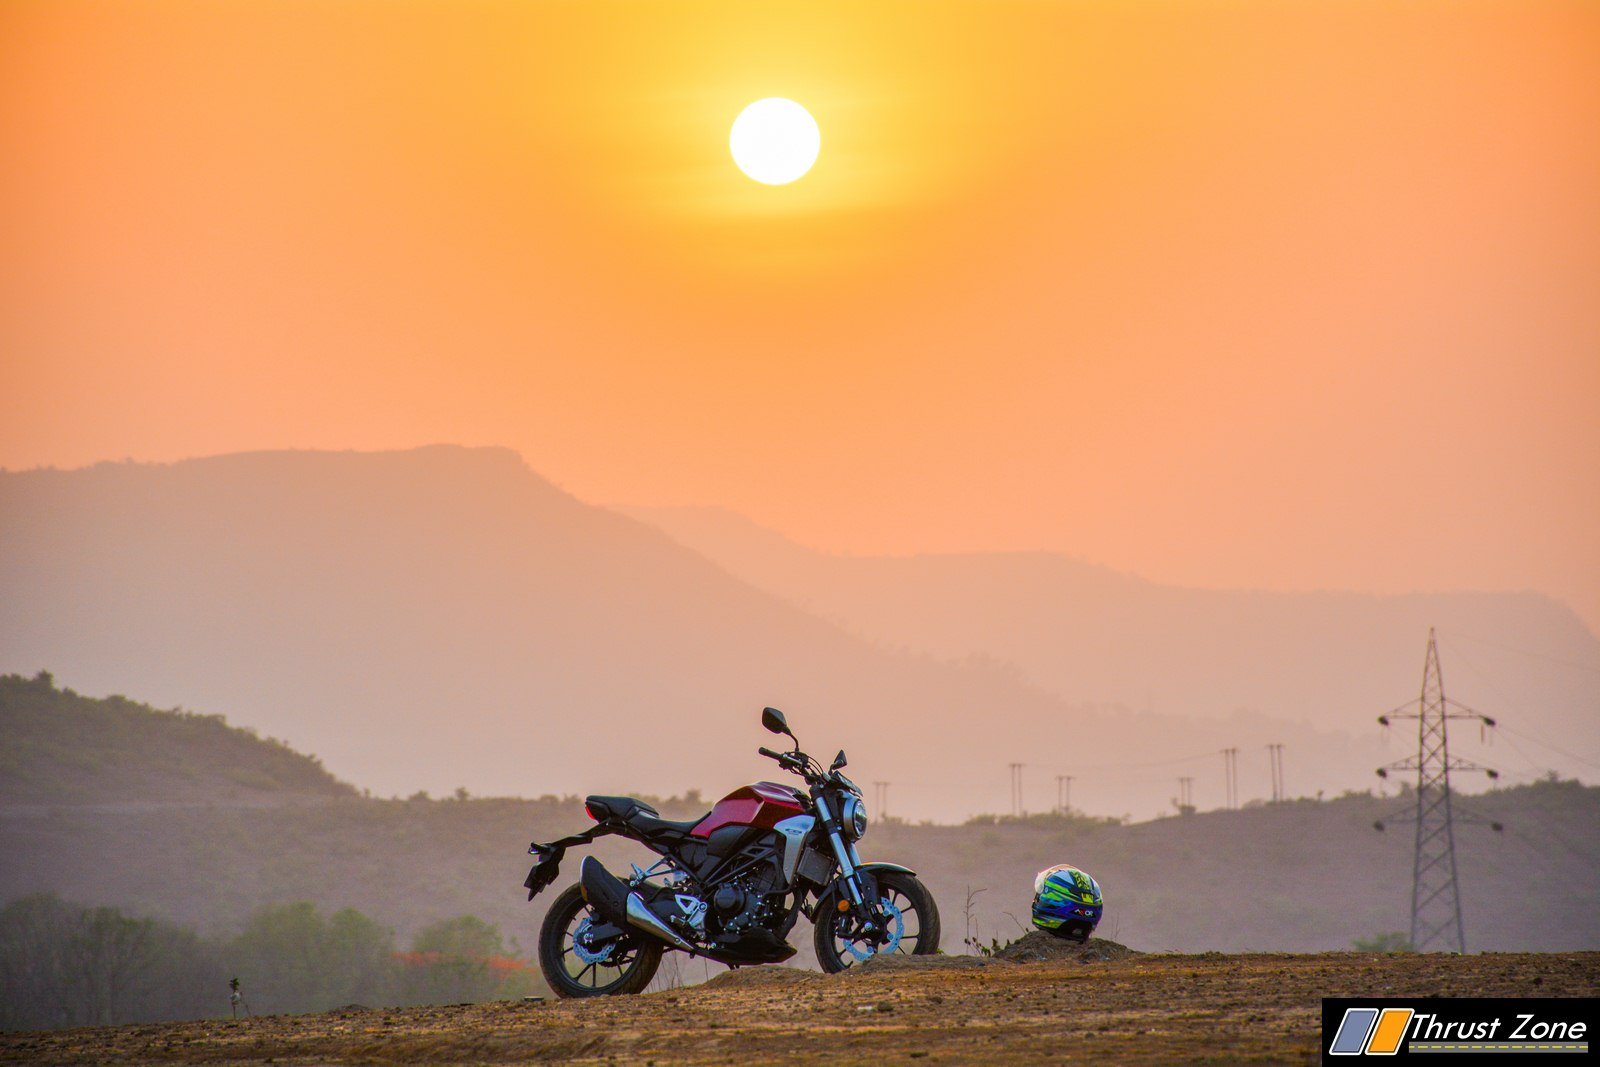 https://www.thrustzone.com/wp-content/uploads/2019/06/2019-Honda-CB300R-Review-India-27.jpg